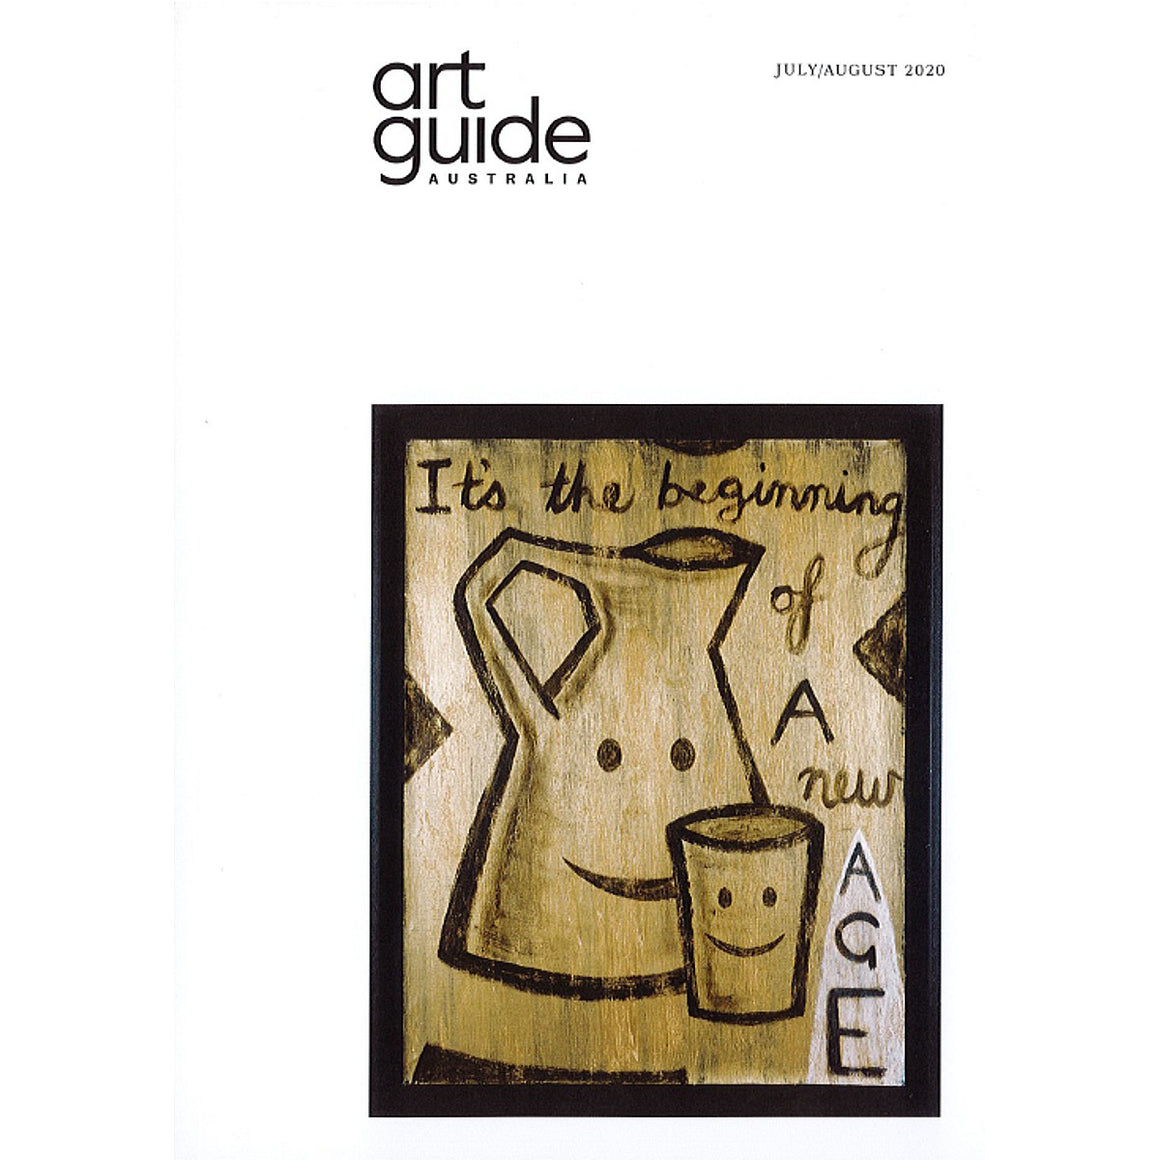 The cover of the July/August Issue 126 of Art Guide Australia.